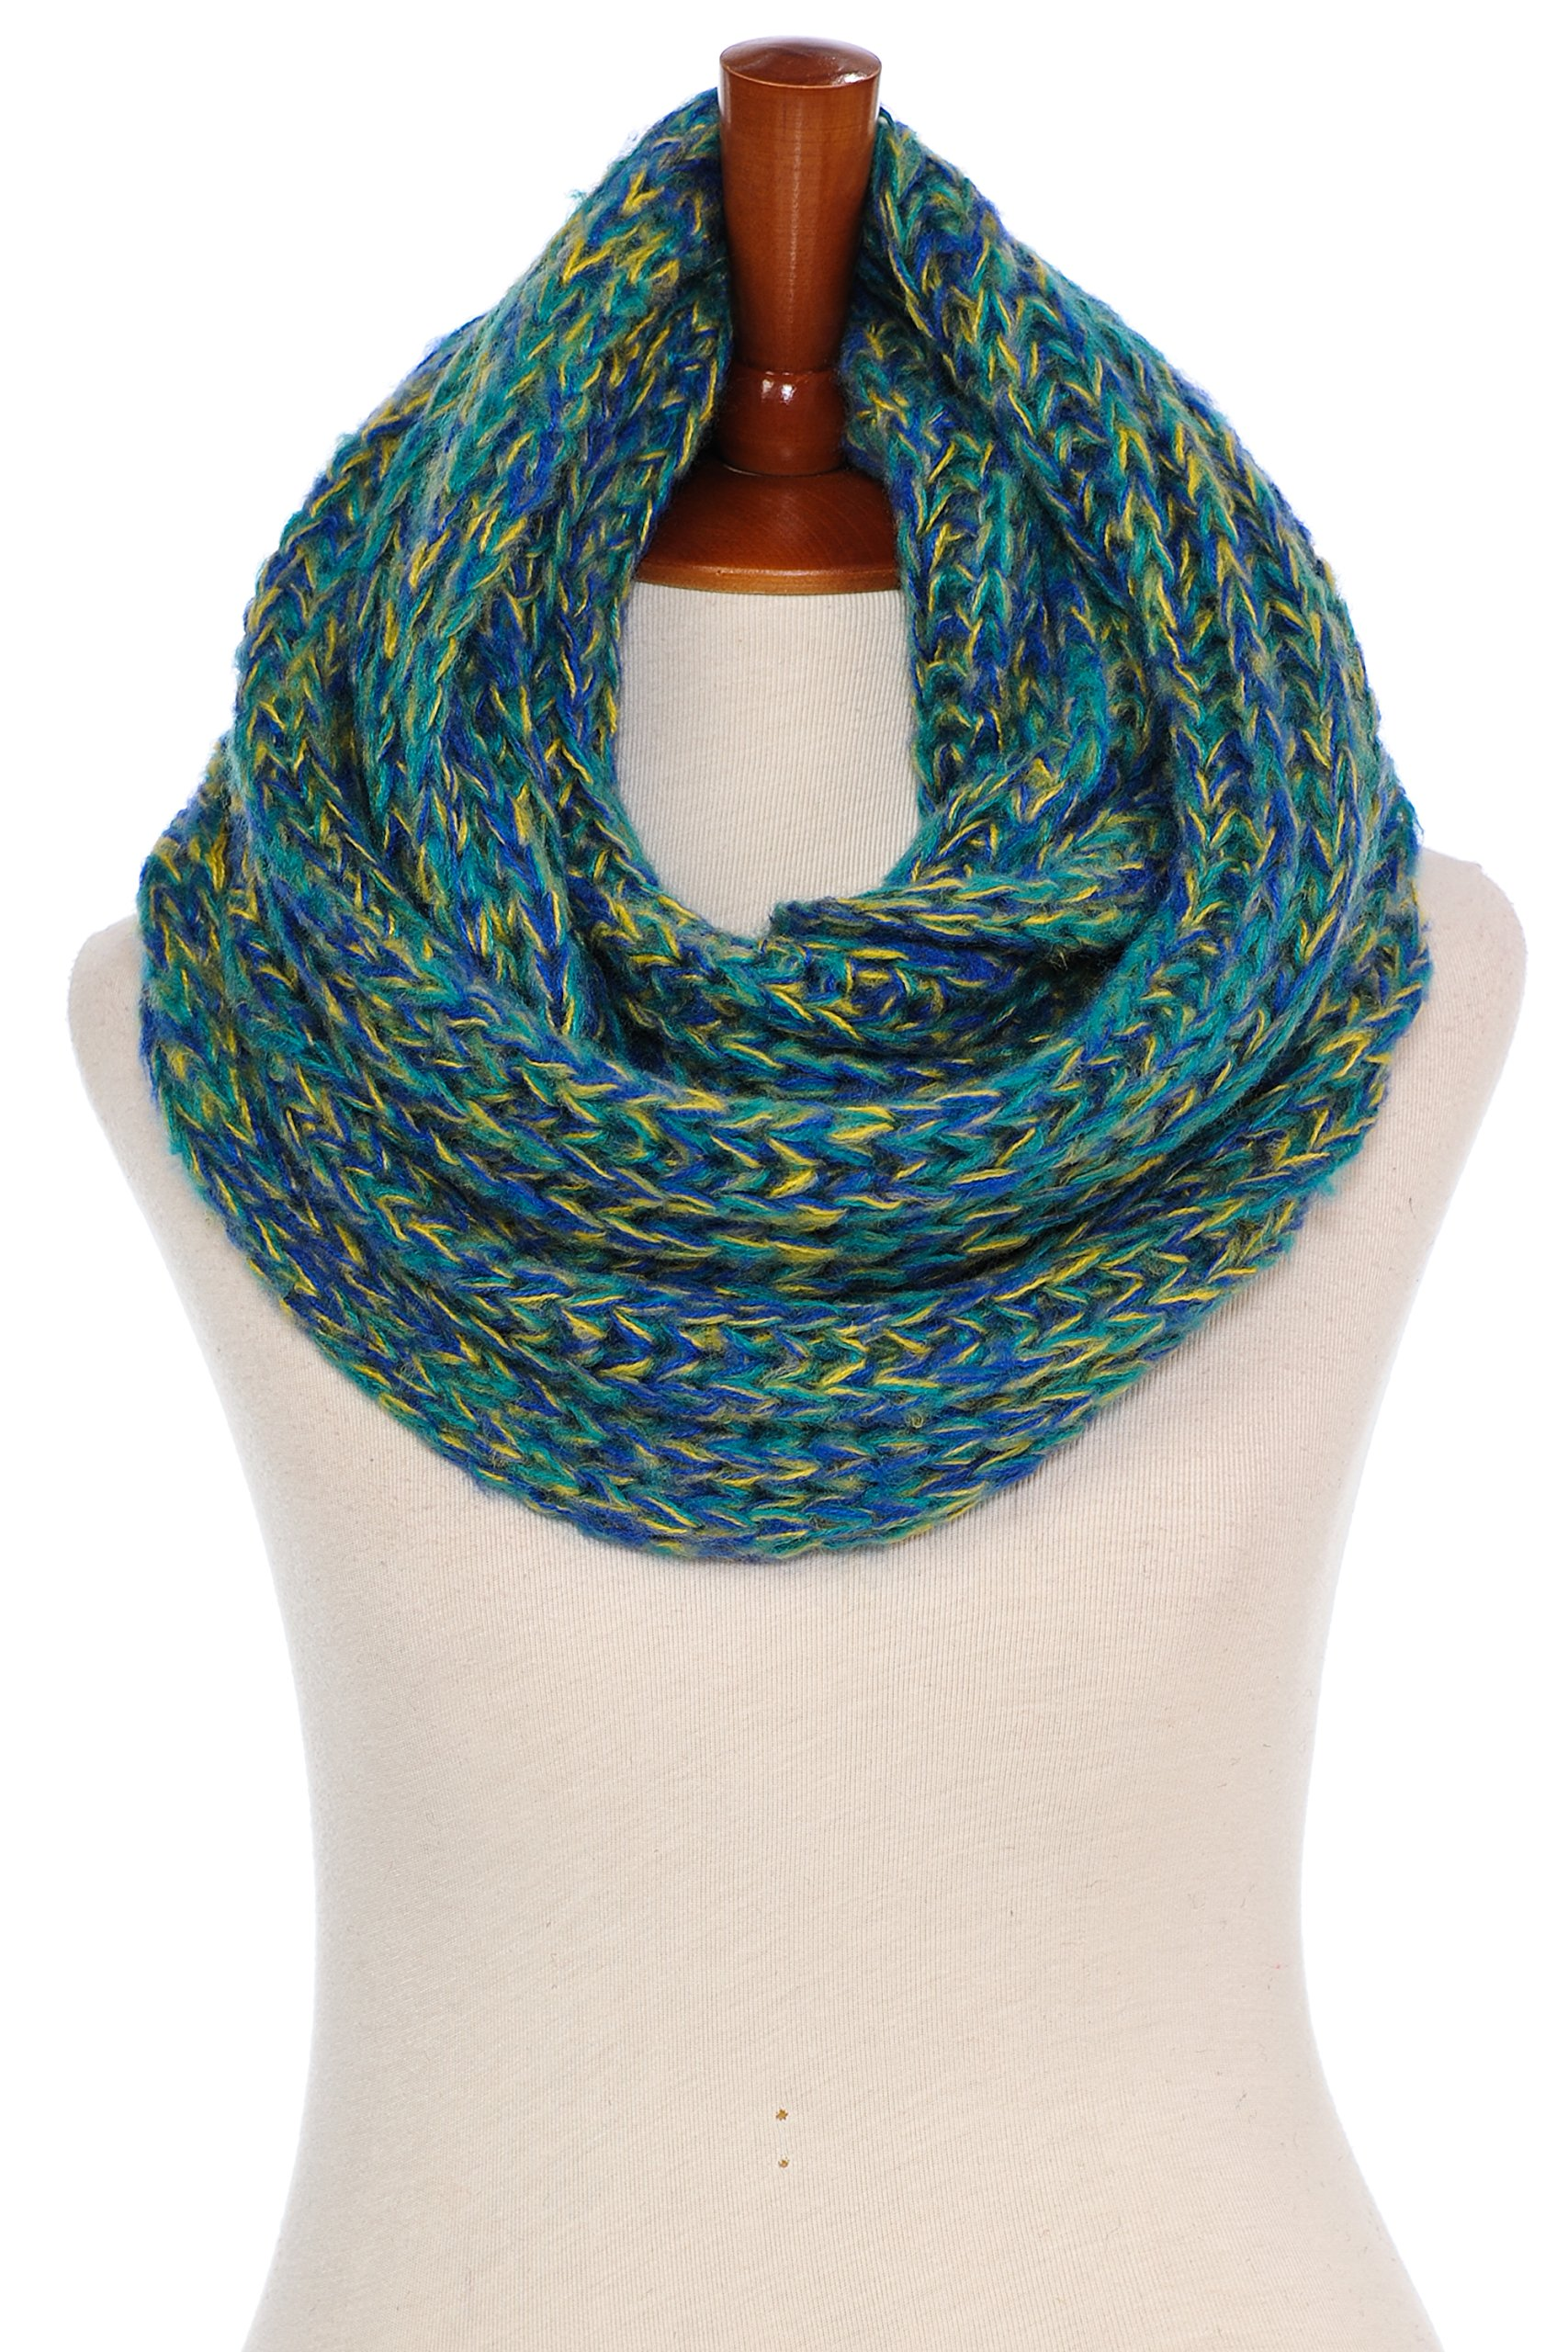 Basico Women Warm Circle Ring Infinity Scarf Neck Warmer Various Colors (1714 Teal)